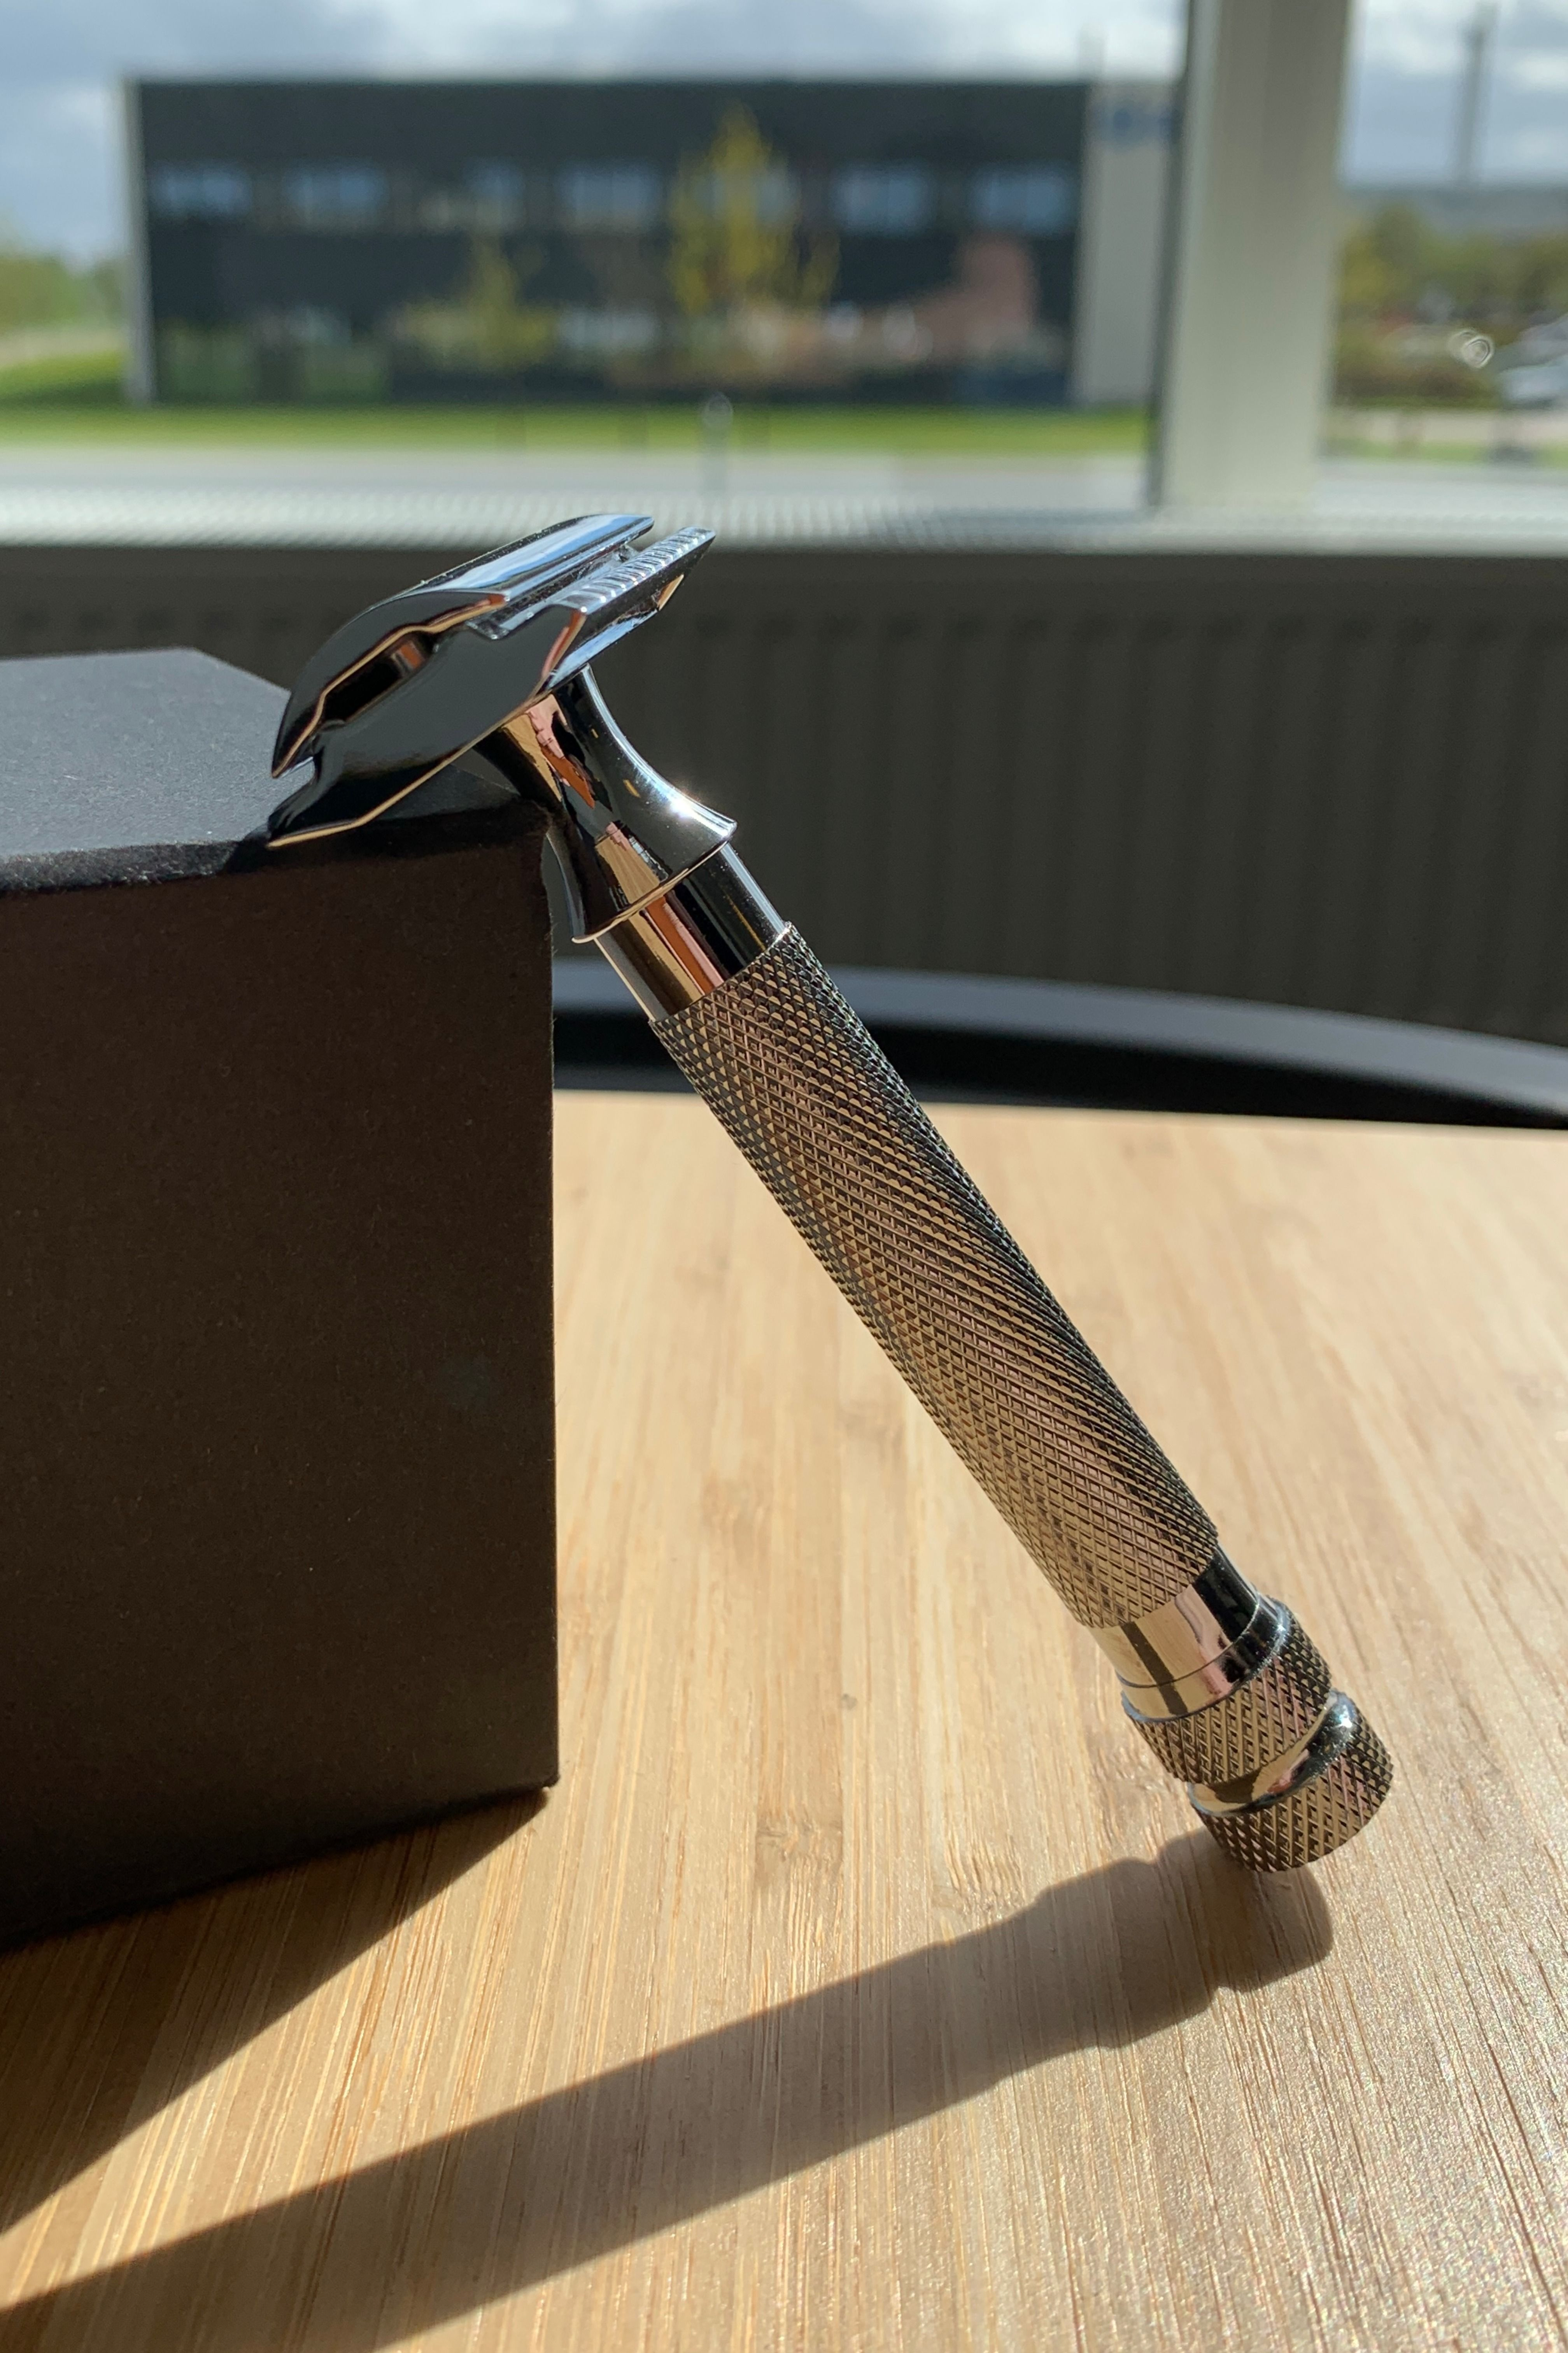 This retro 3piece safety razor is the essence of old